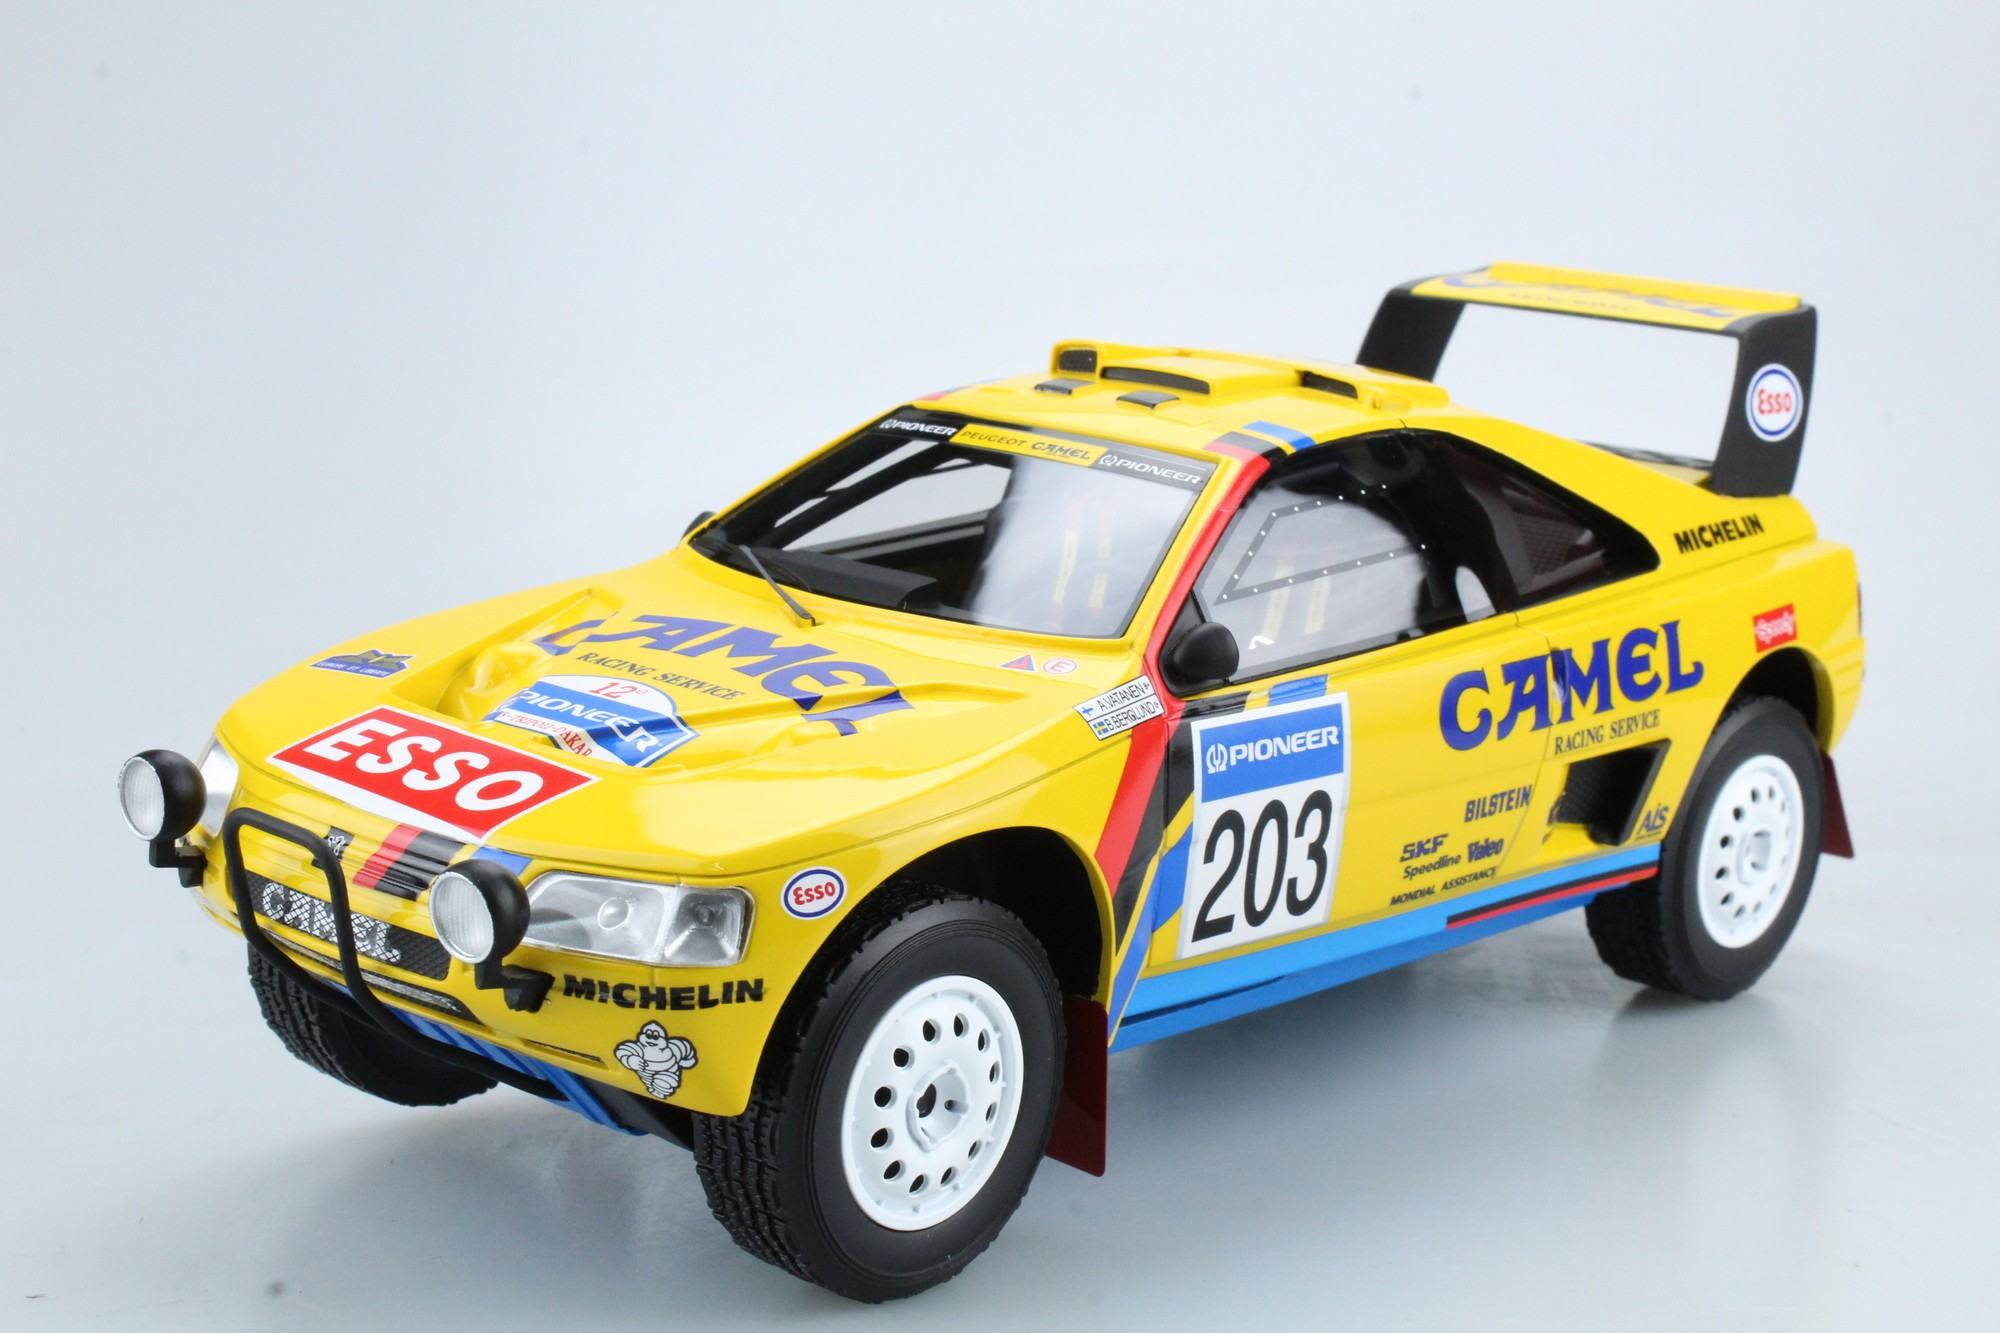 Top Marques Collectibles Peugeot 405 GT T 16 Paris Dakar Winner 1990